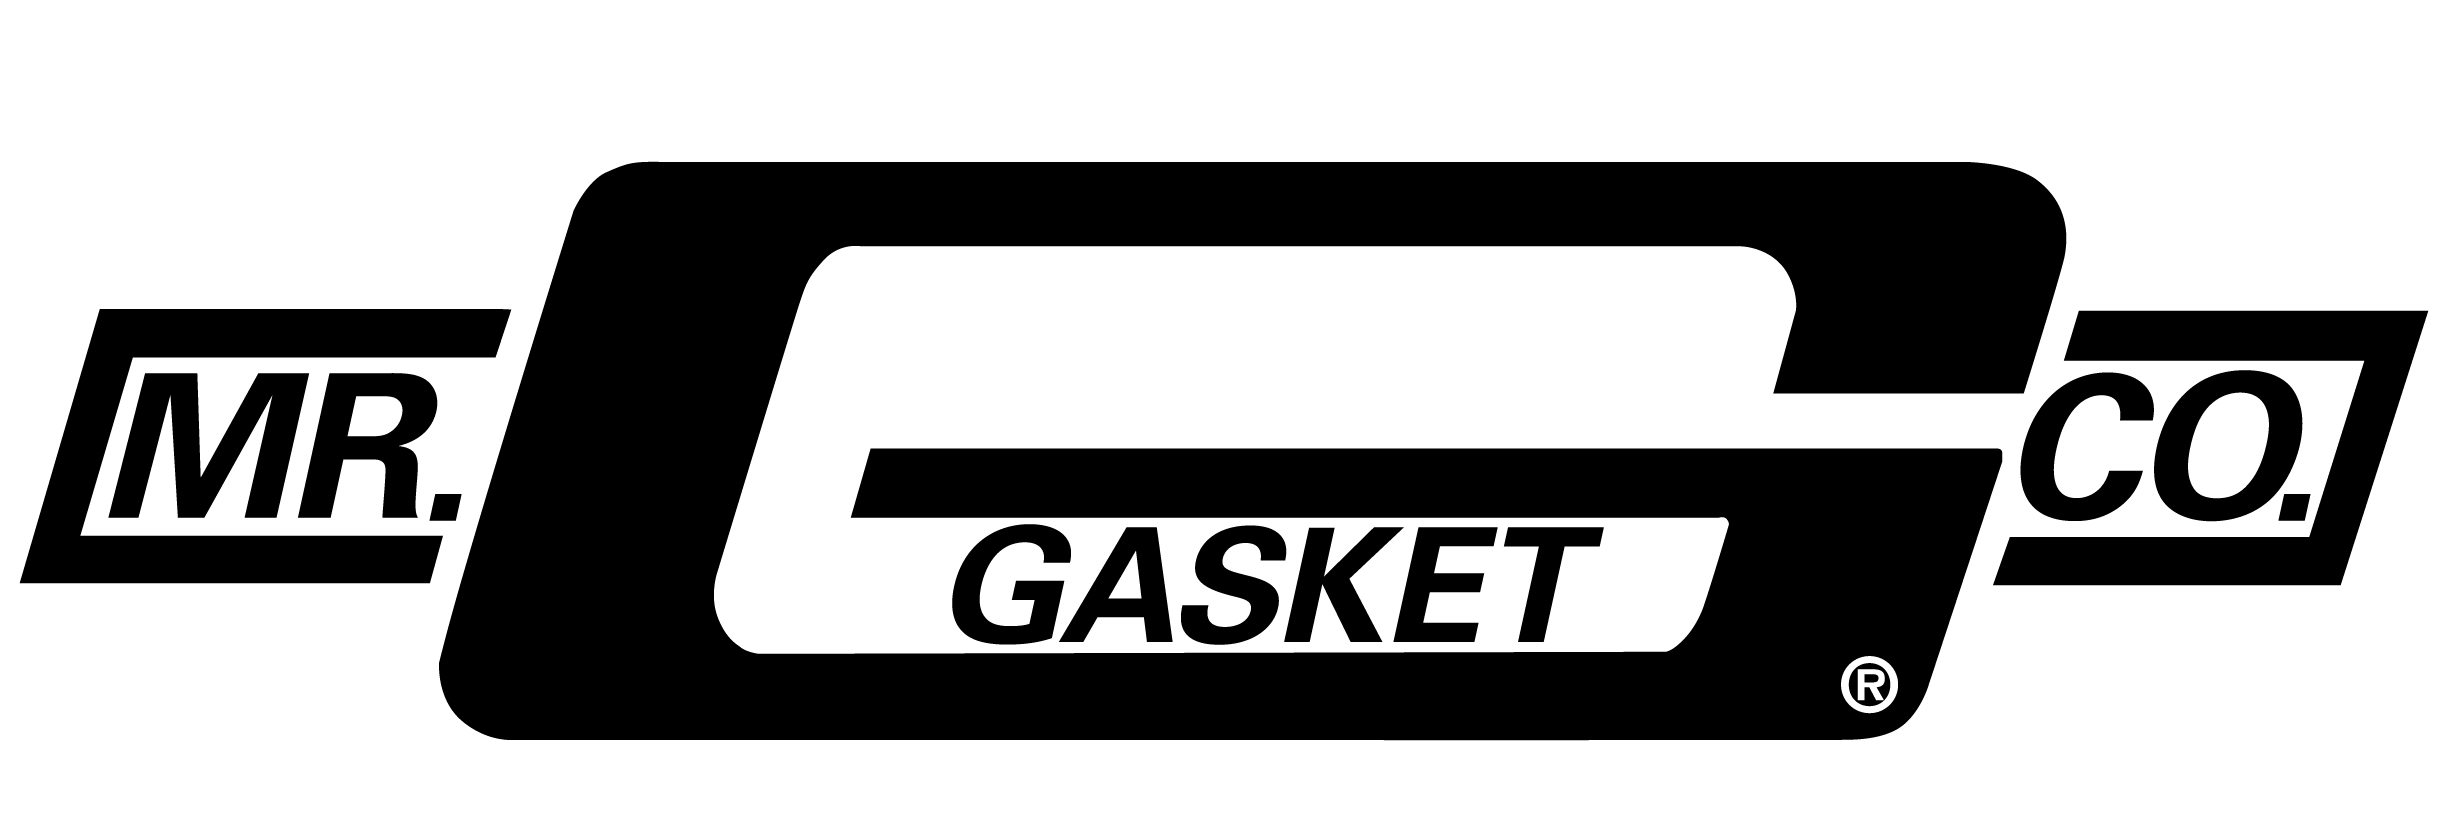 Mr. Gasket Co logo